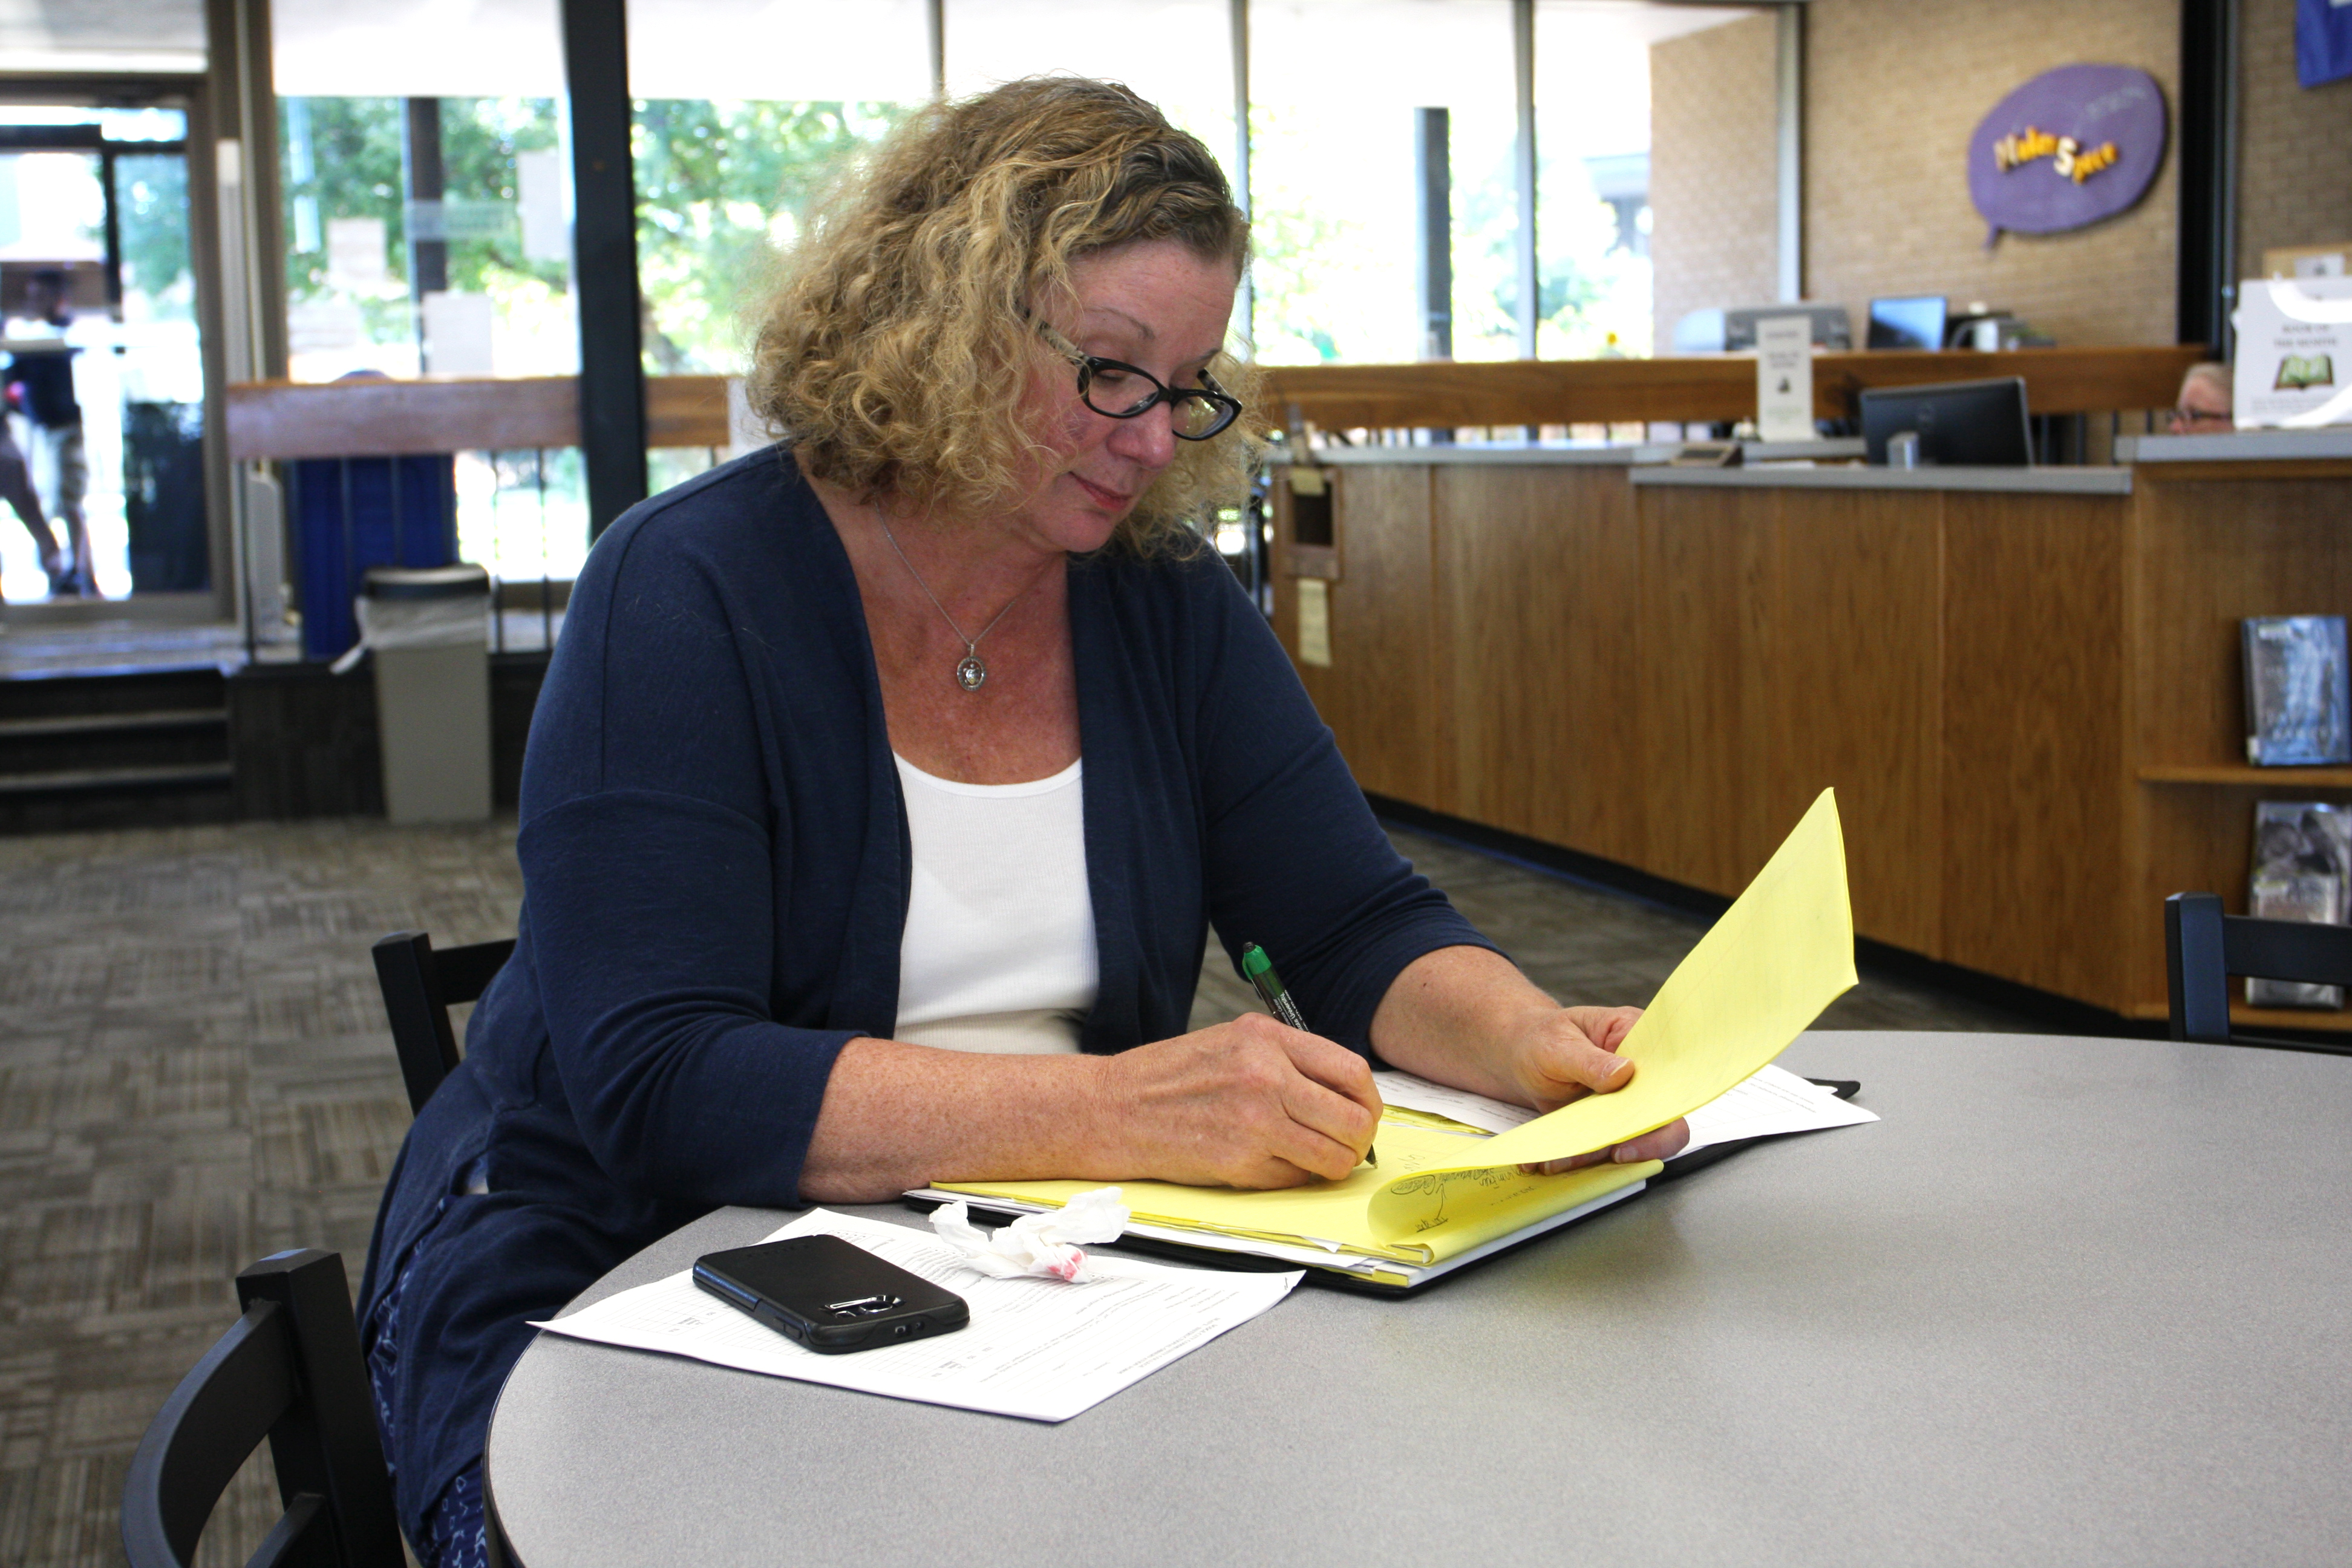 VP of Academic Affairs Dr. Jane Holwerda prepares for a class observation in the DC3 Library